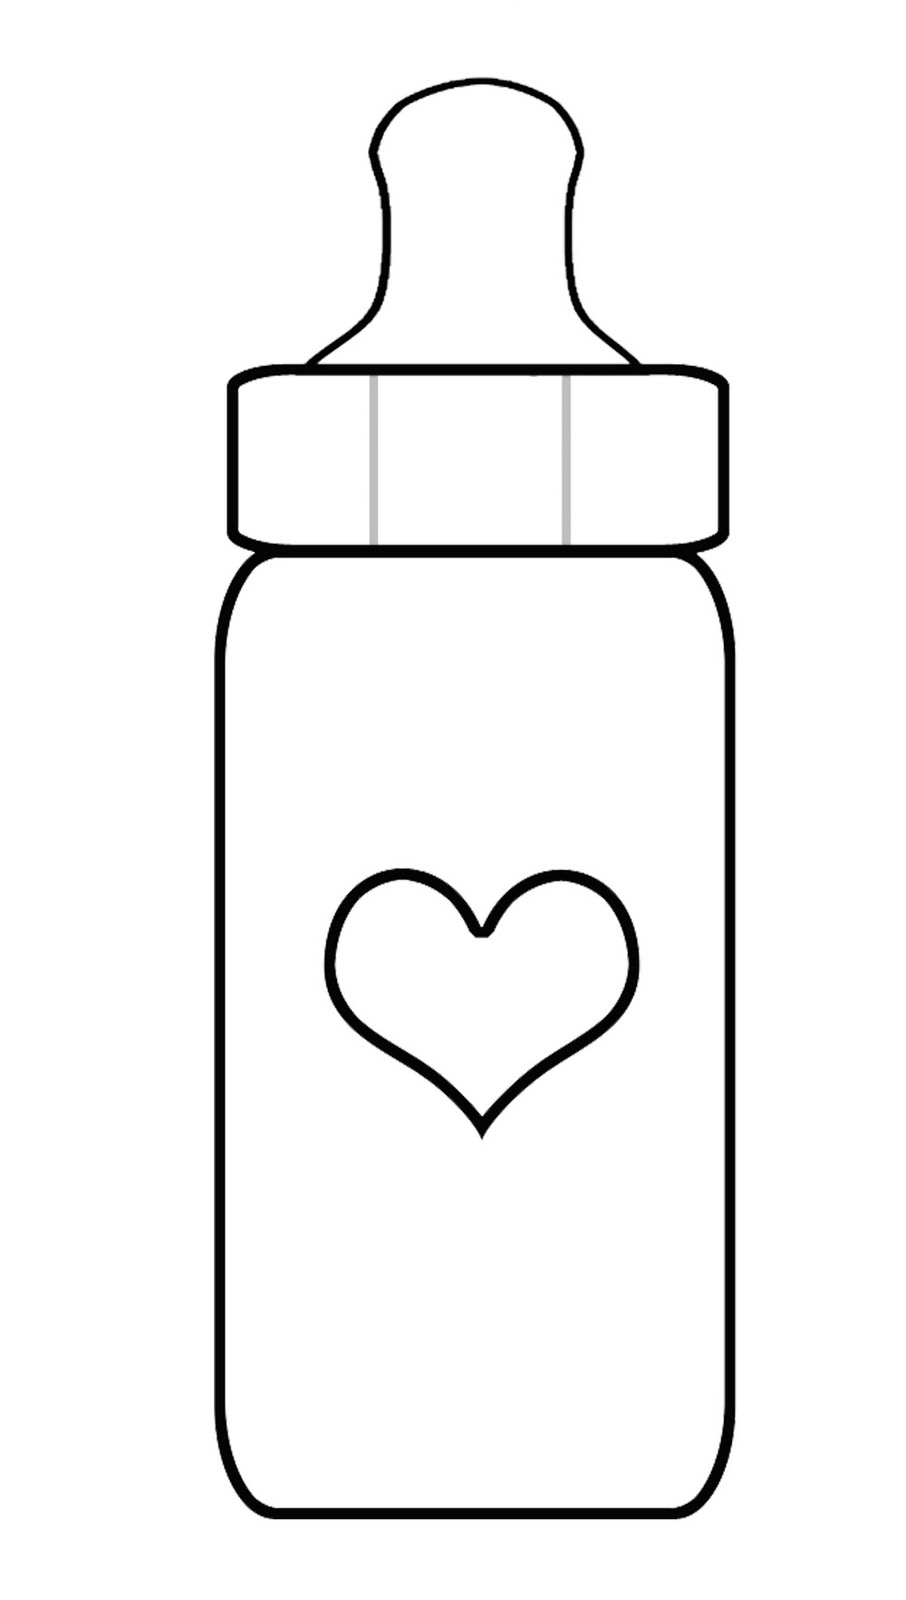 baby item coloring pages - photo#45